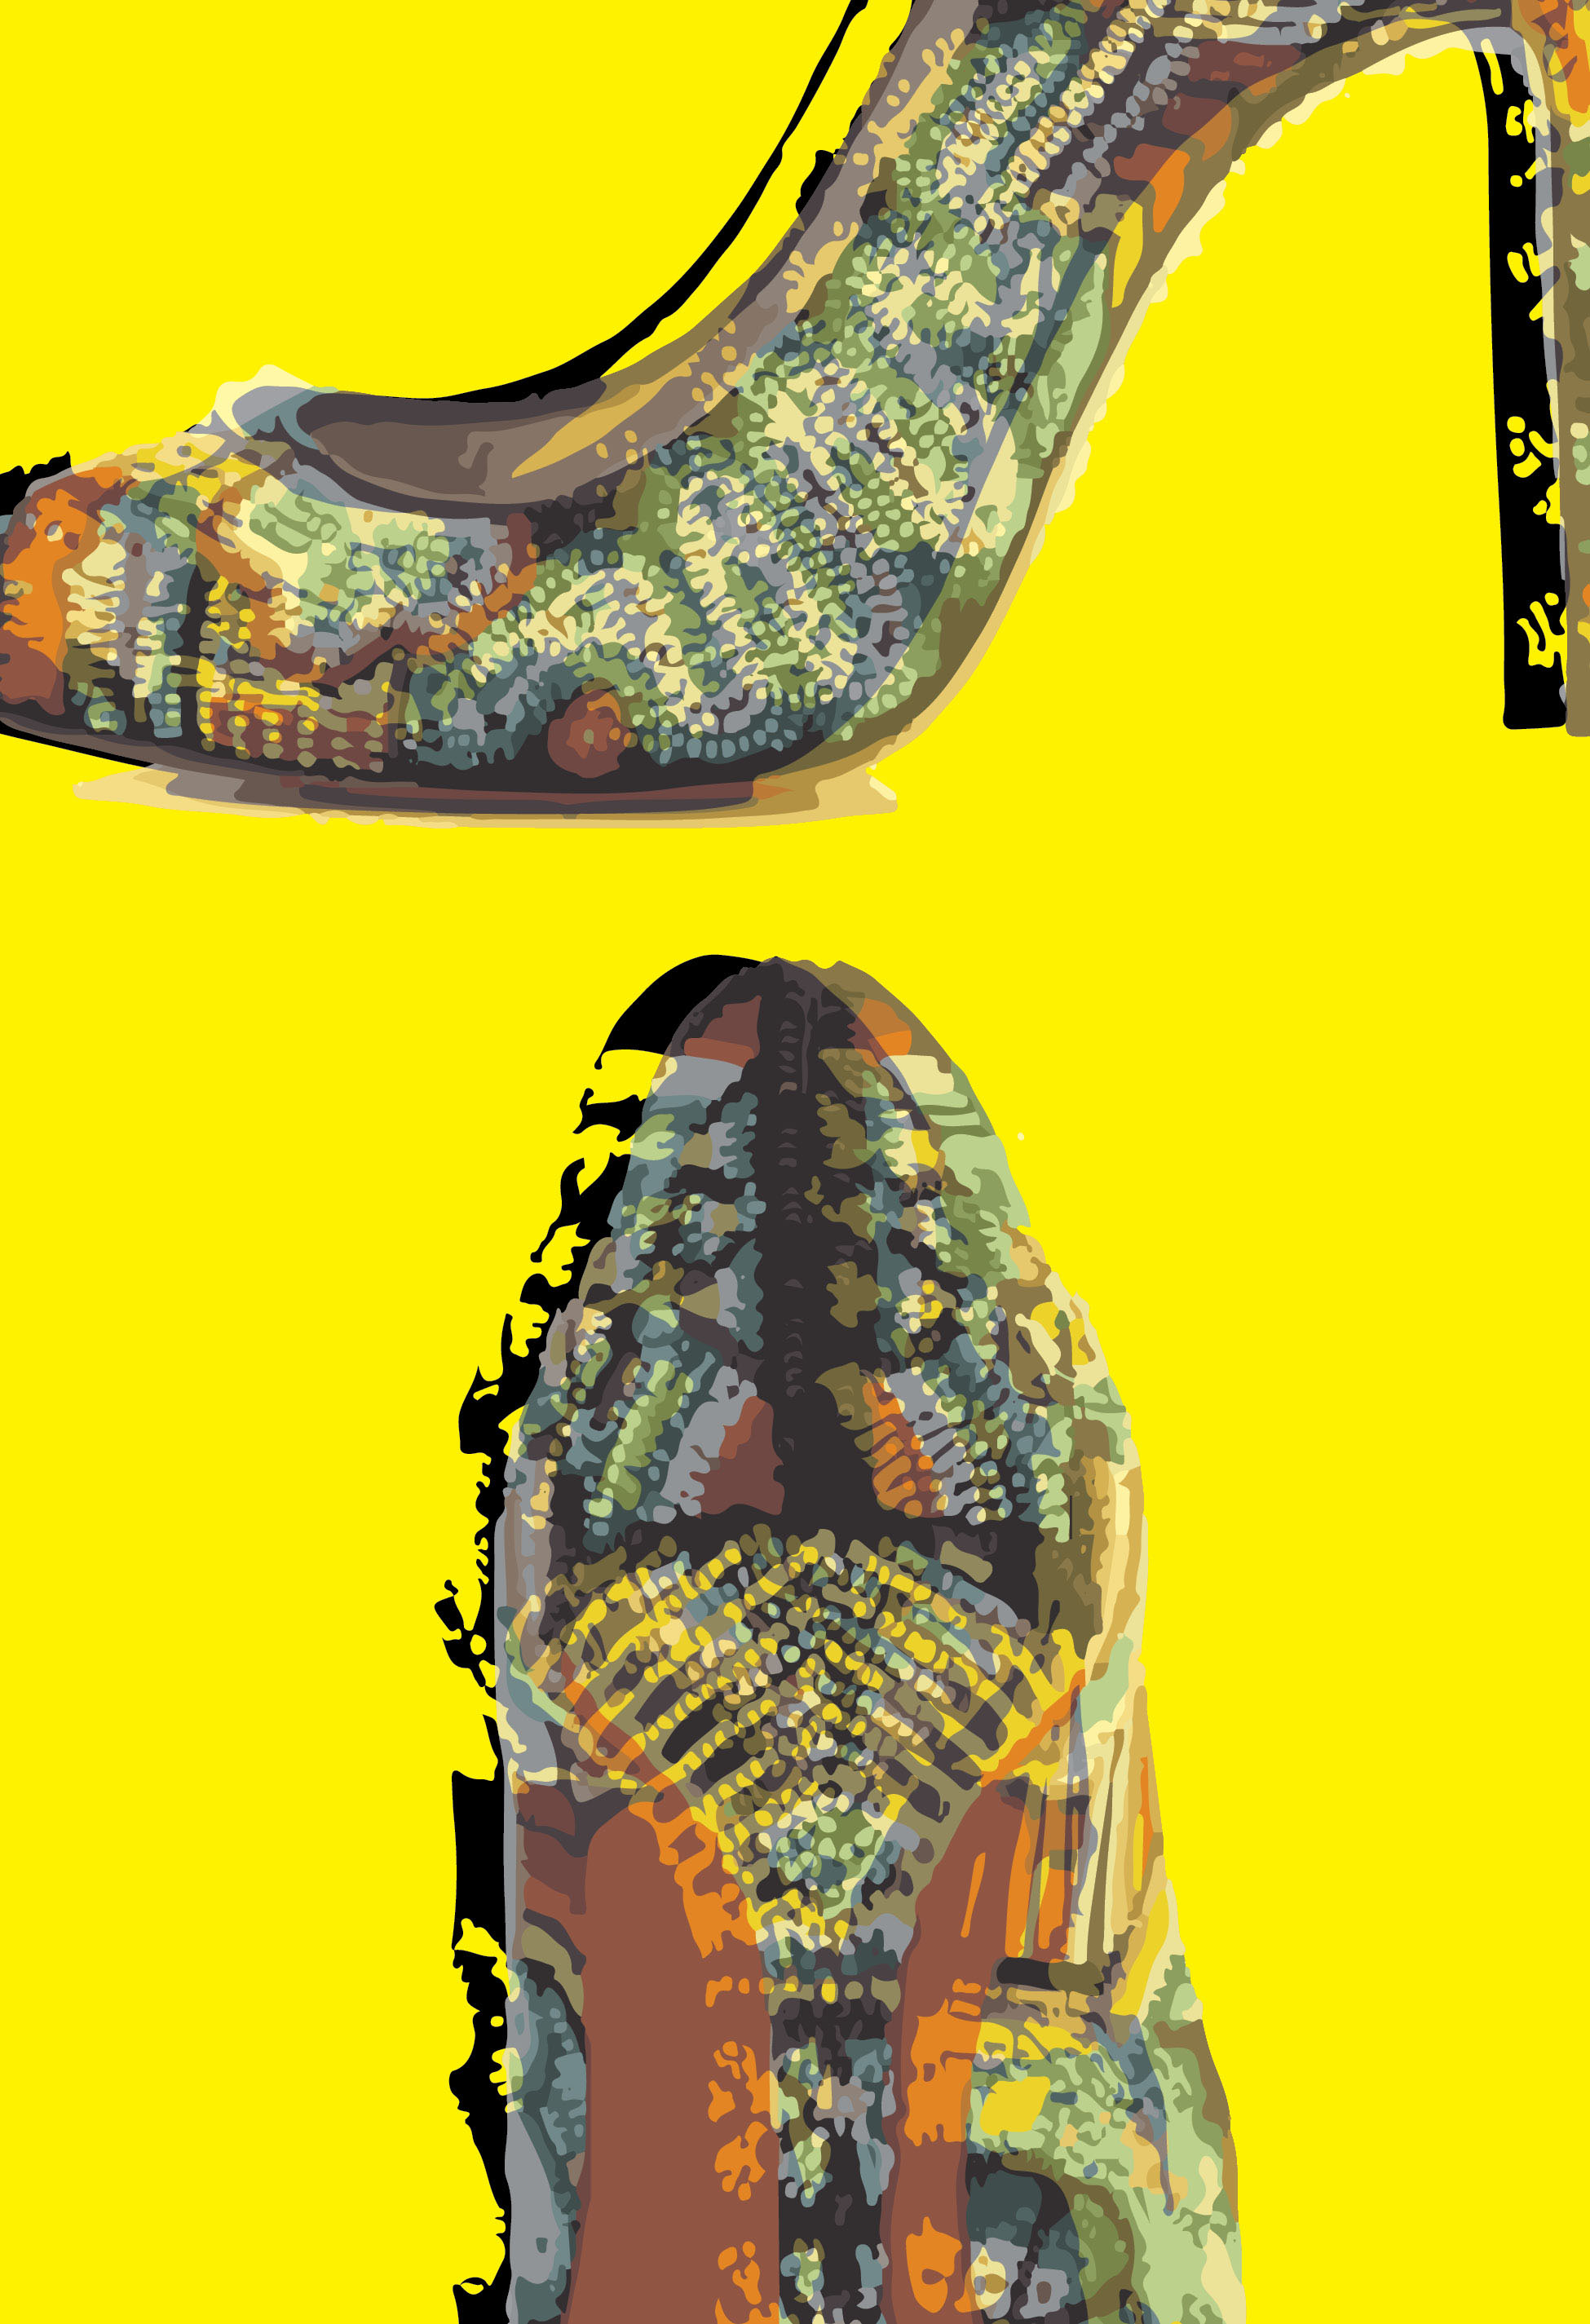 Shoes_13x19 poster10.jpg